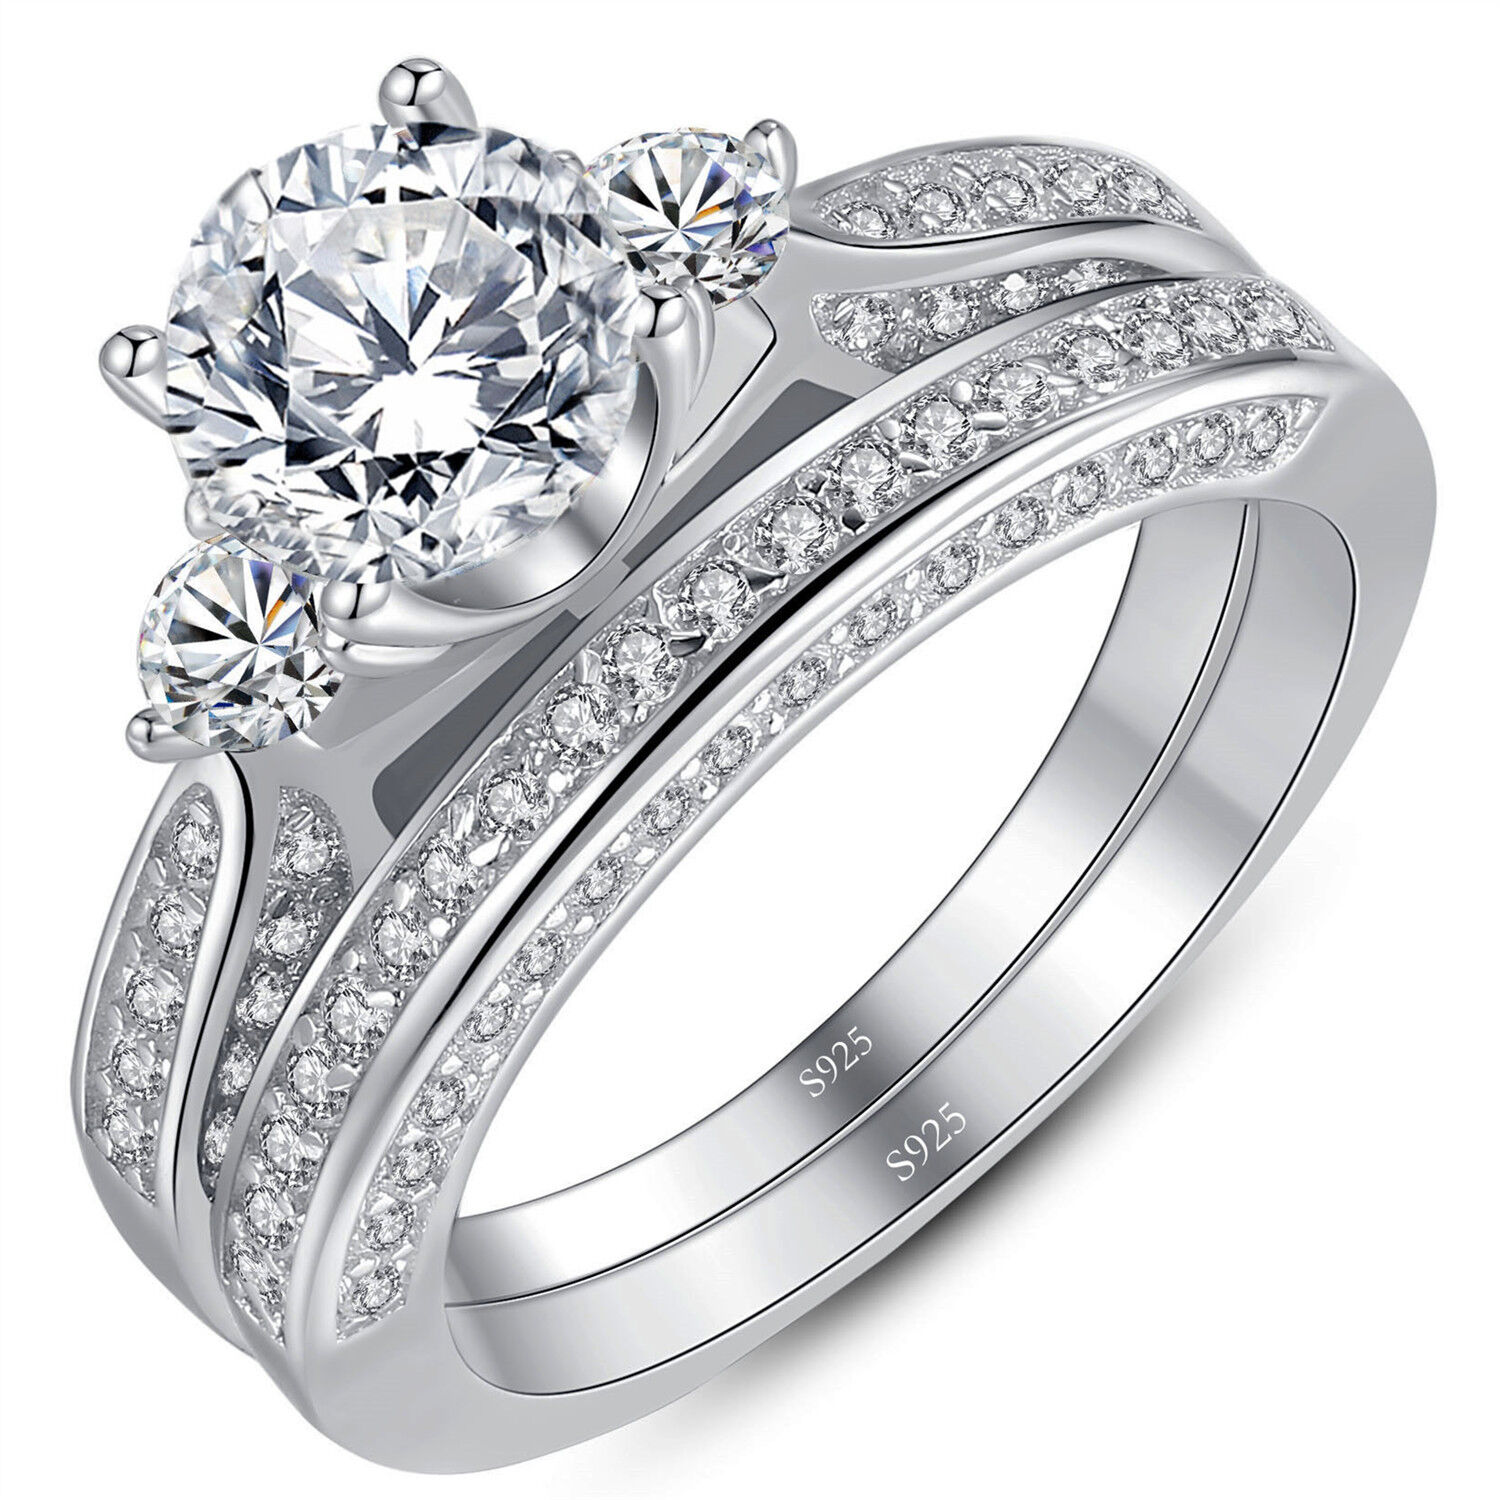 Sterling Silver 1.25 ct Round CZ Women's Wedding Engagement